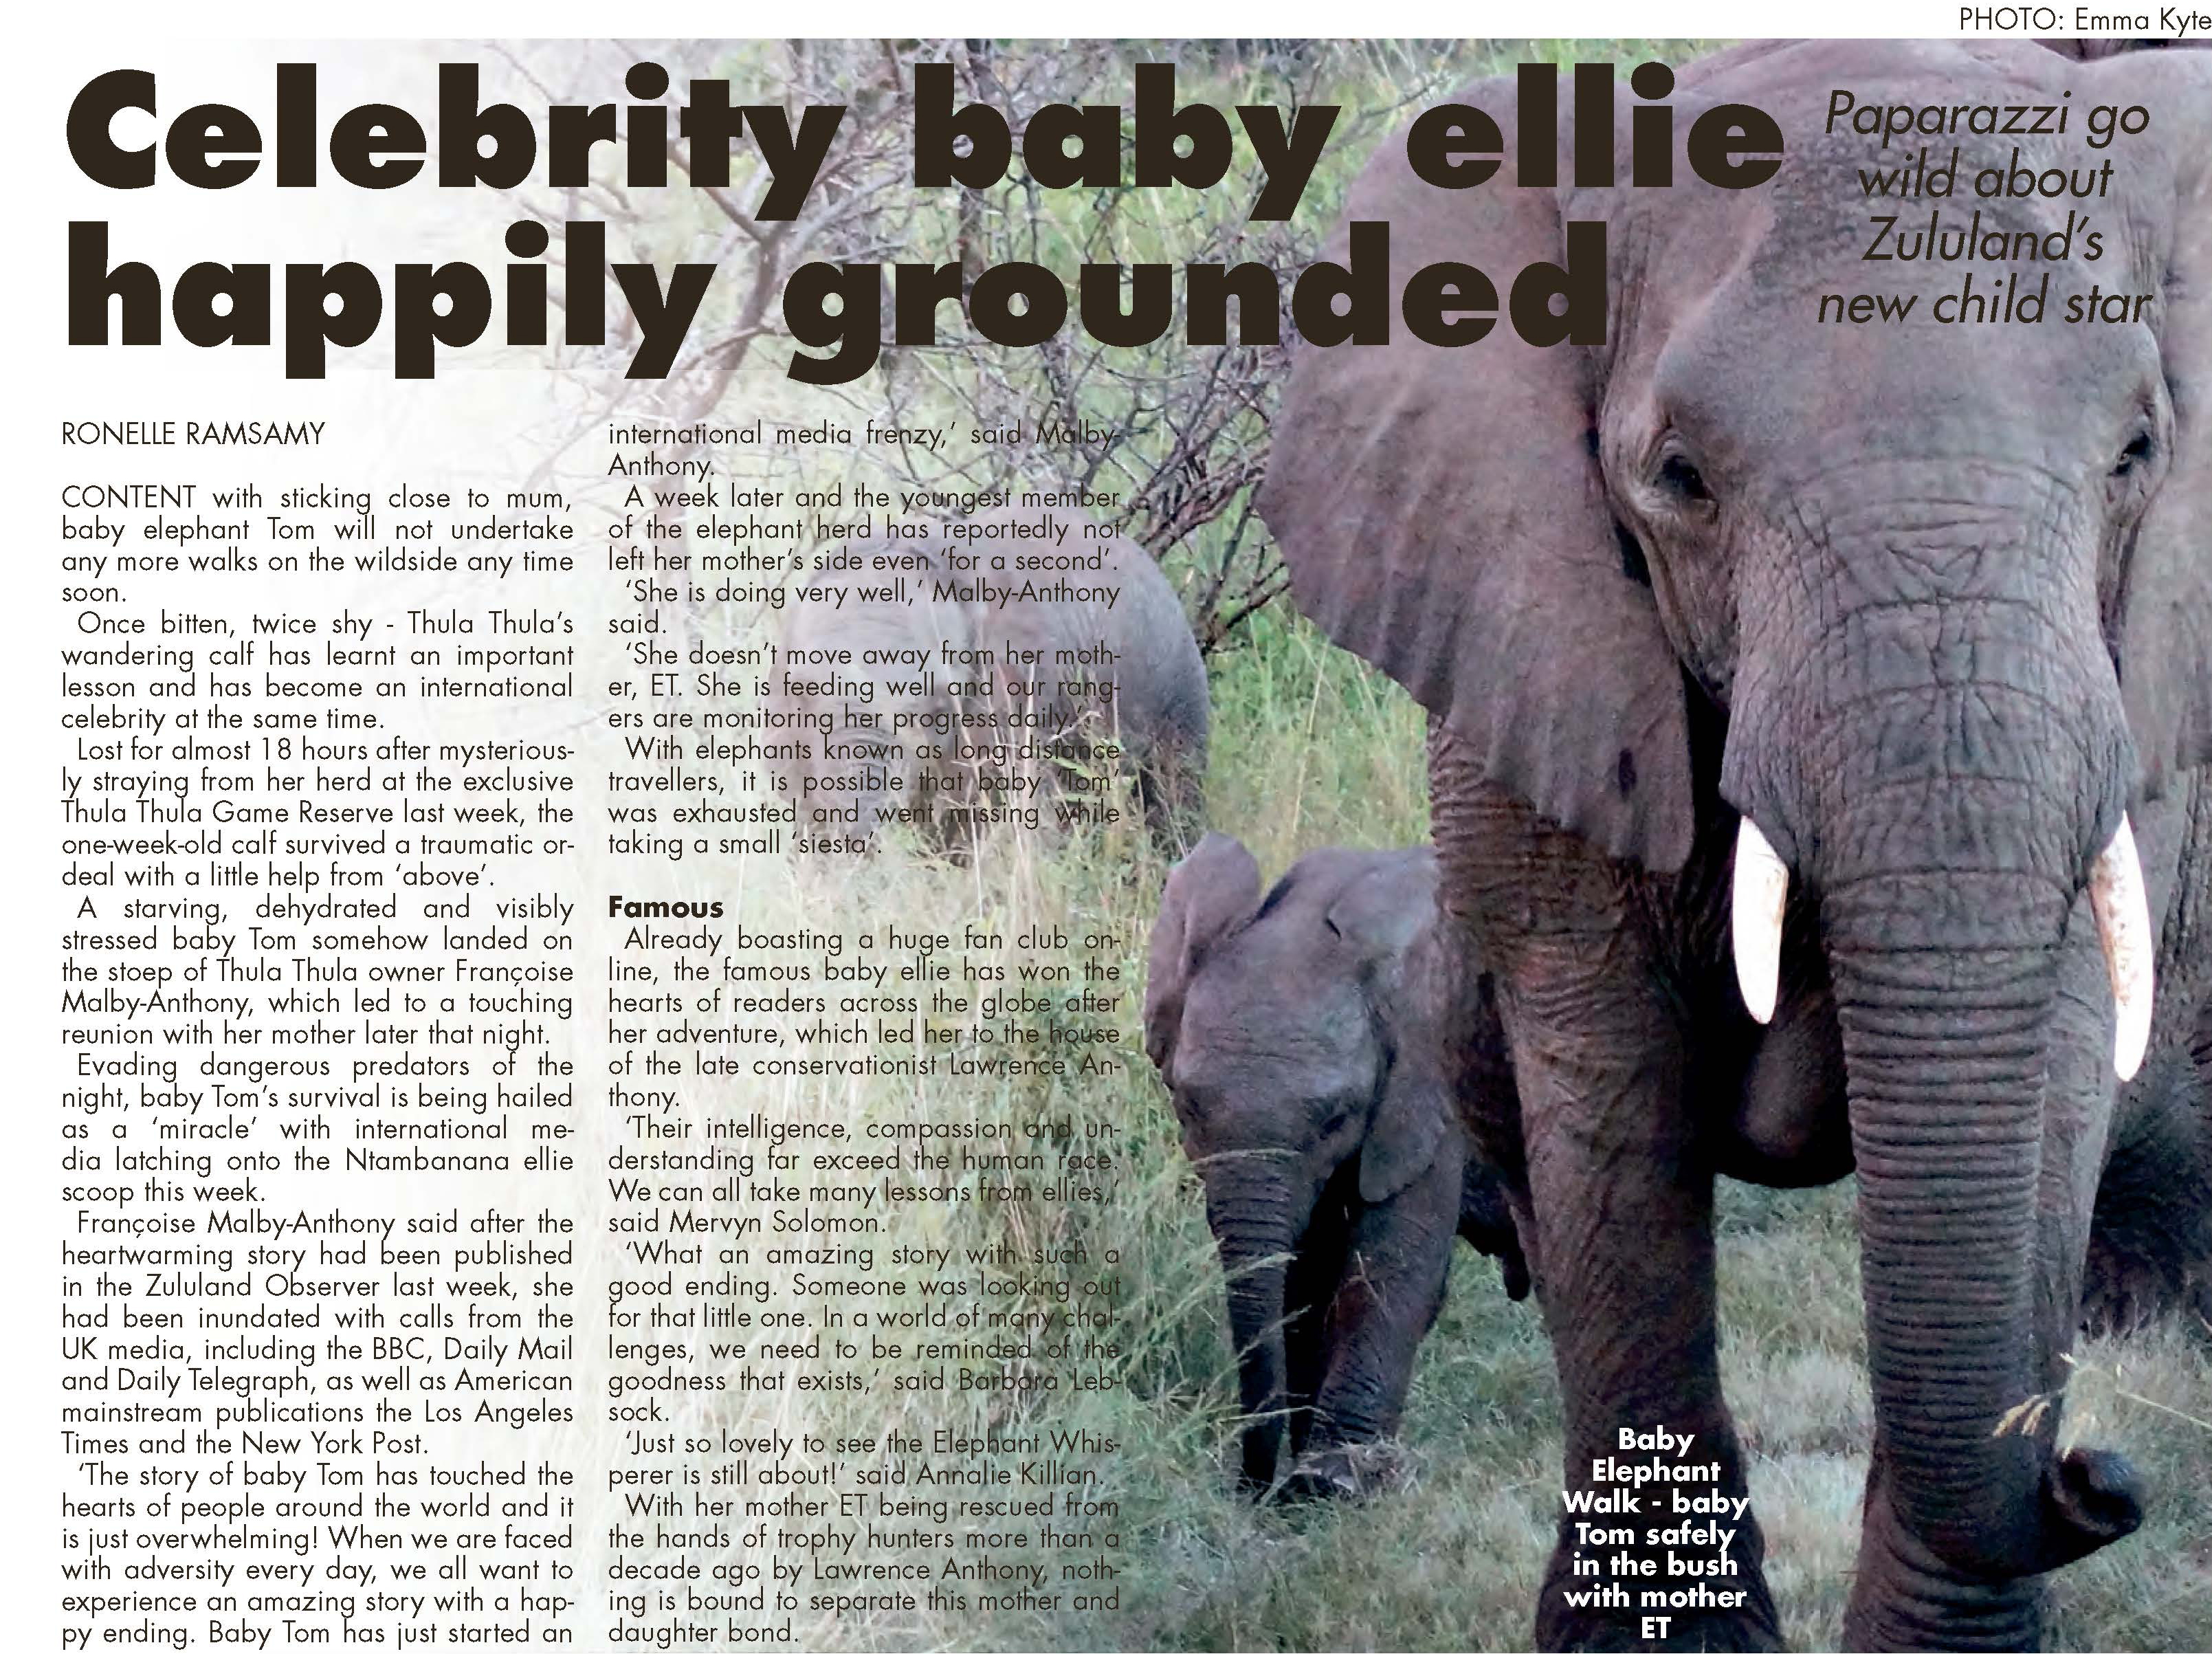 Celebrity baby ellie happily grounded